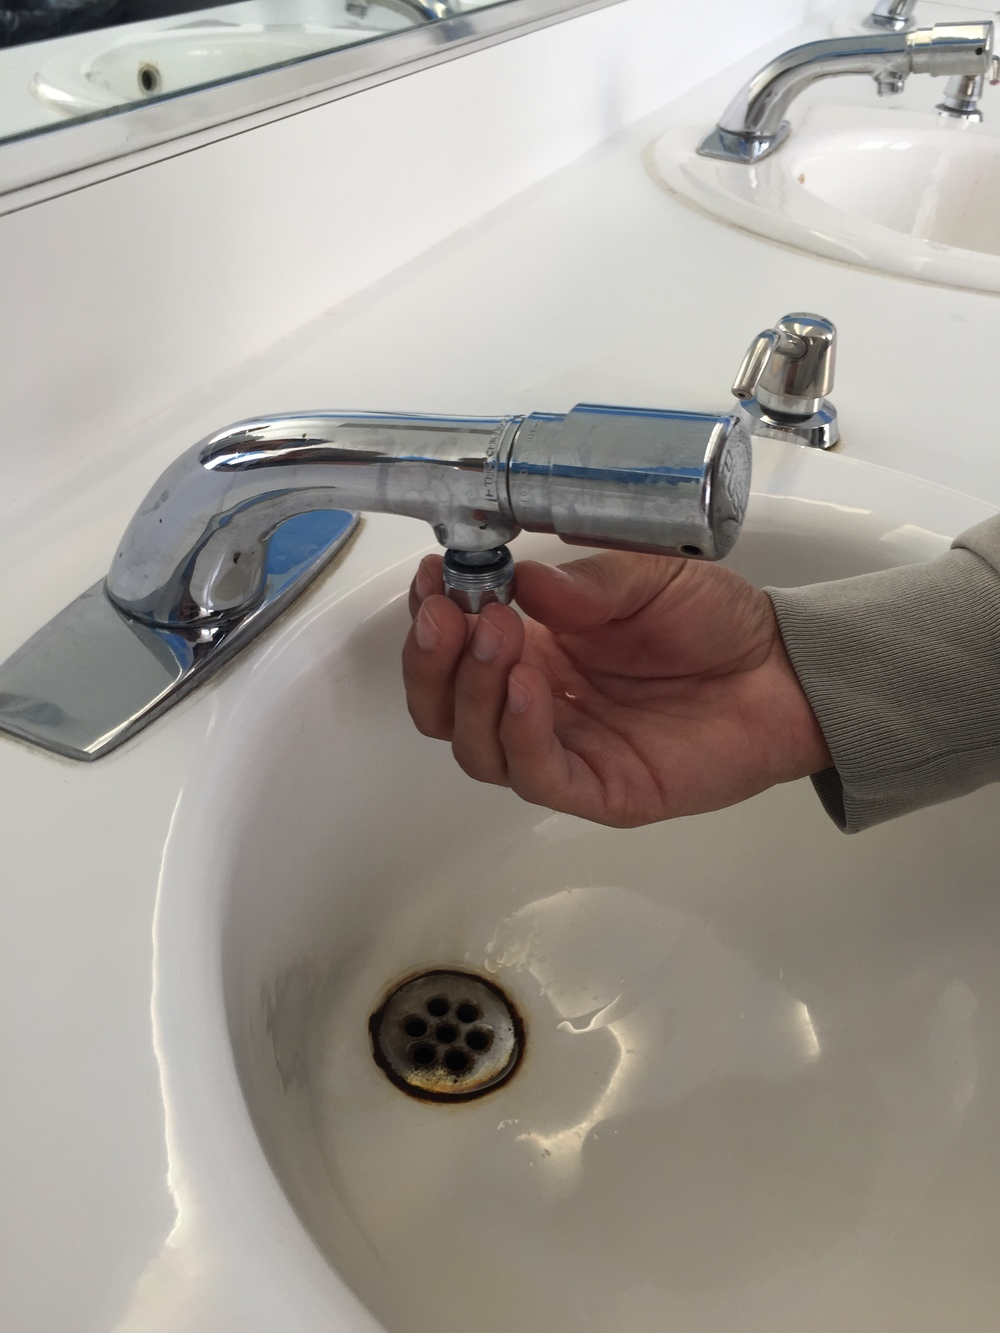 GAP Volunteers replacing low-flow faucet aerators on a project. Photo credit Josh Dean